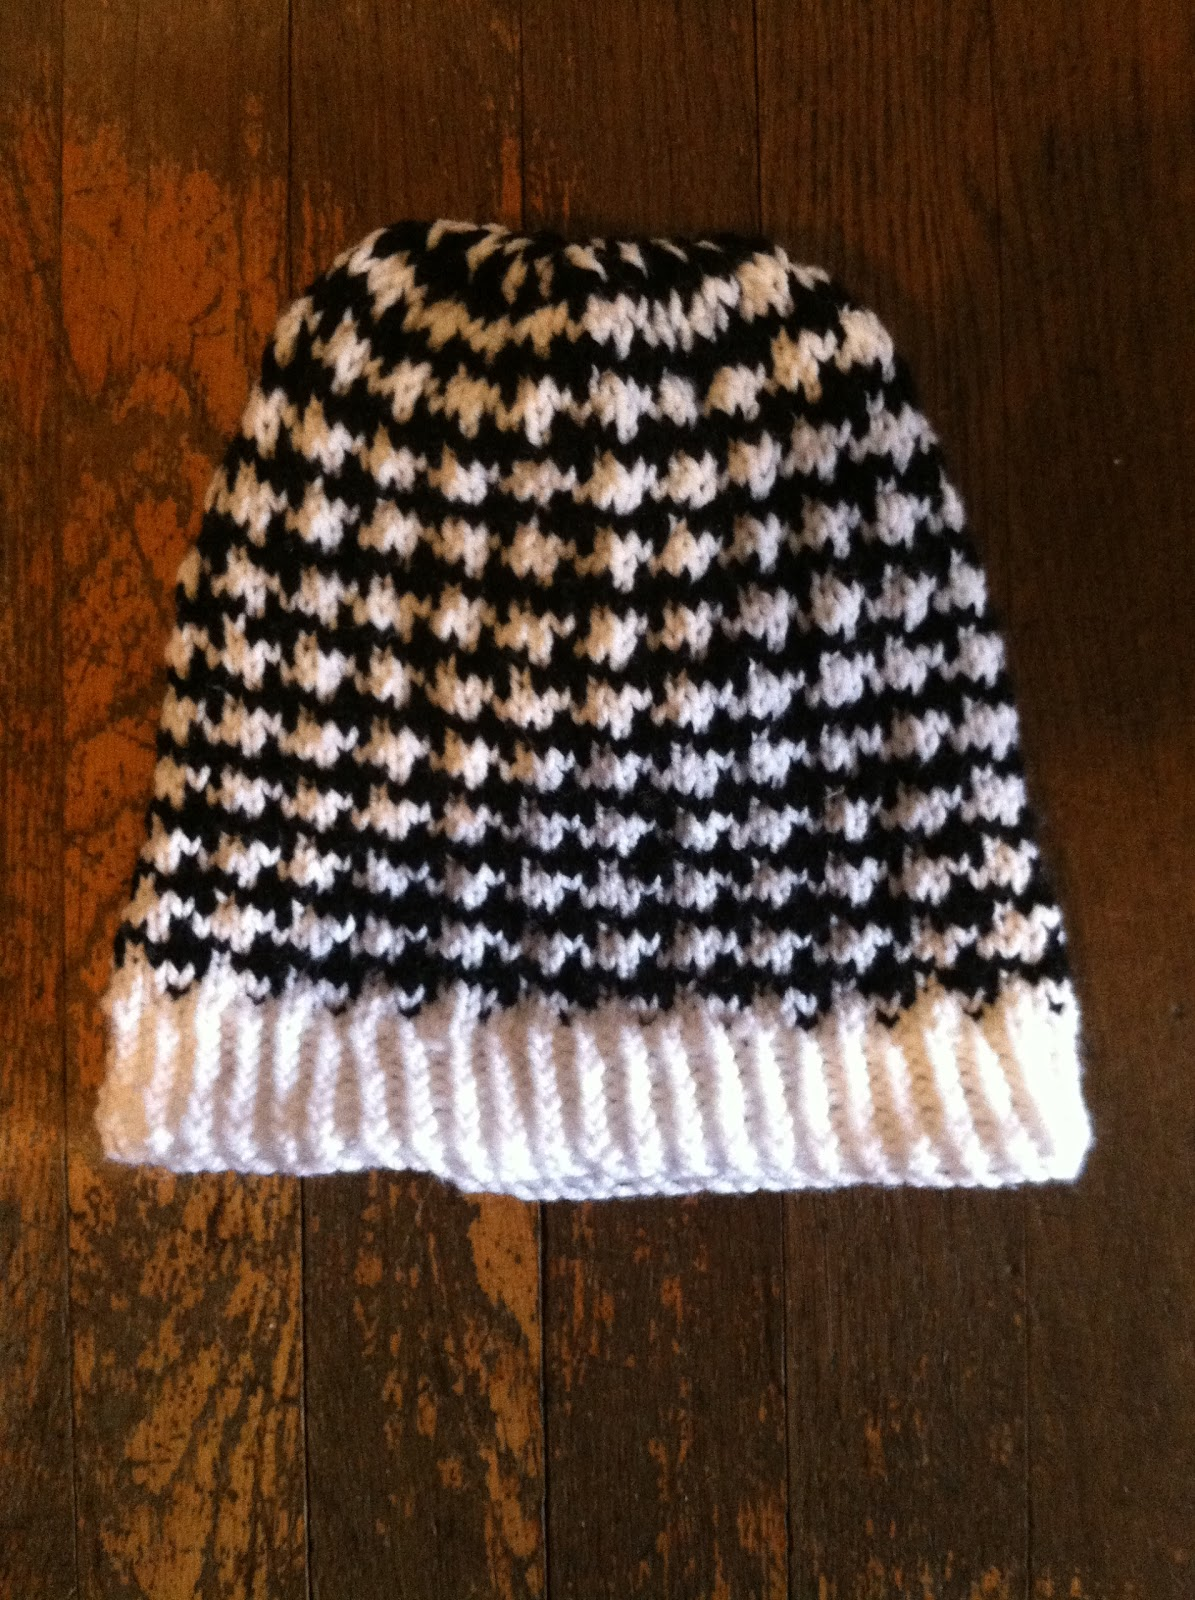 Cats and Crafts: Knitted Houndstooth Hat